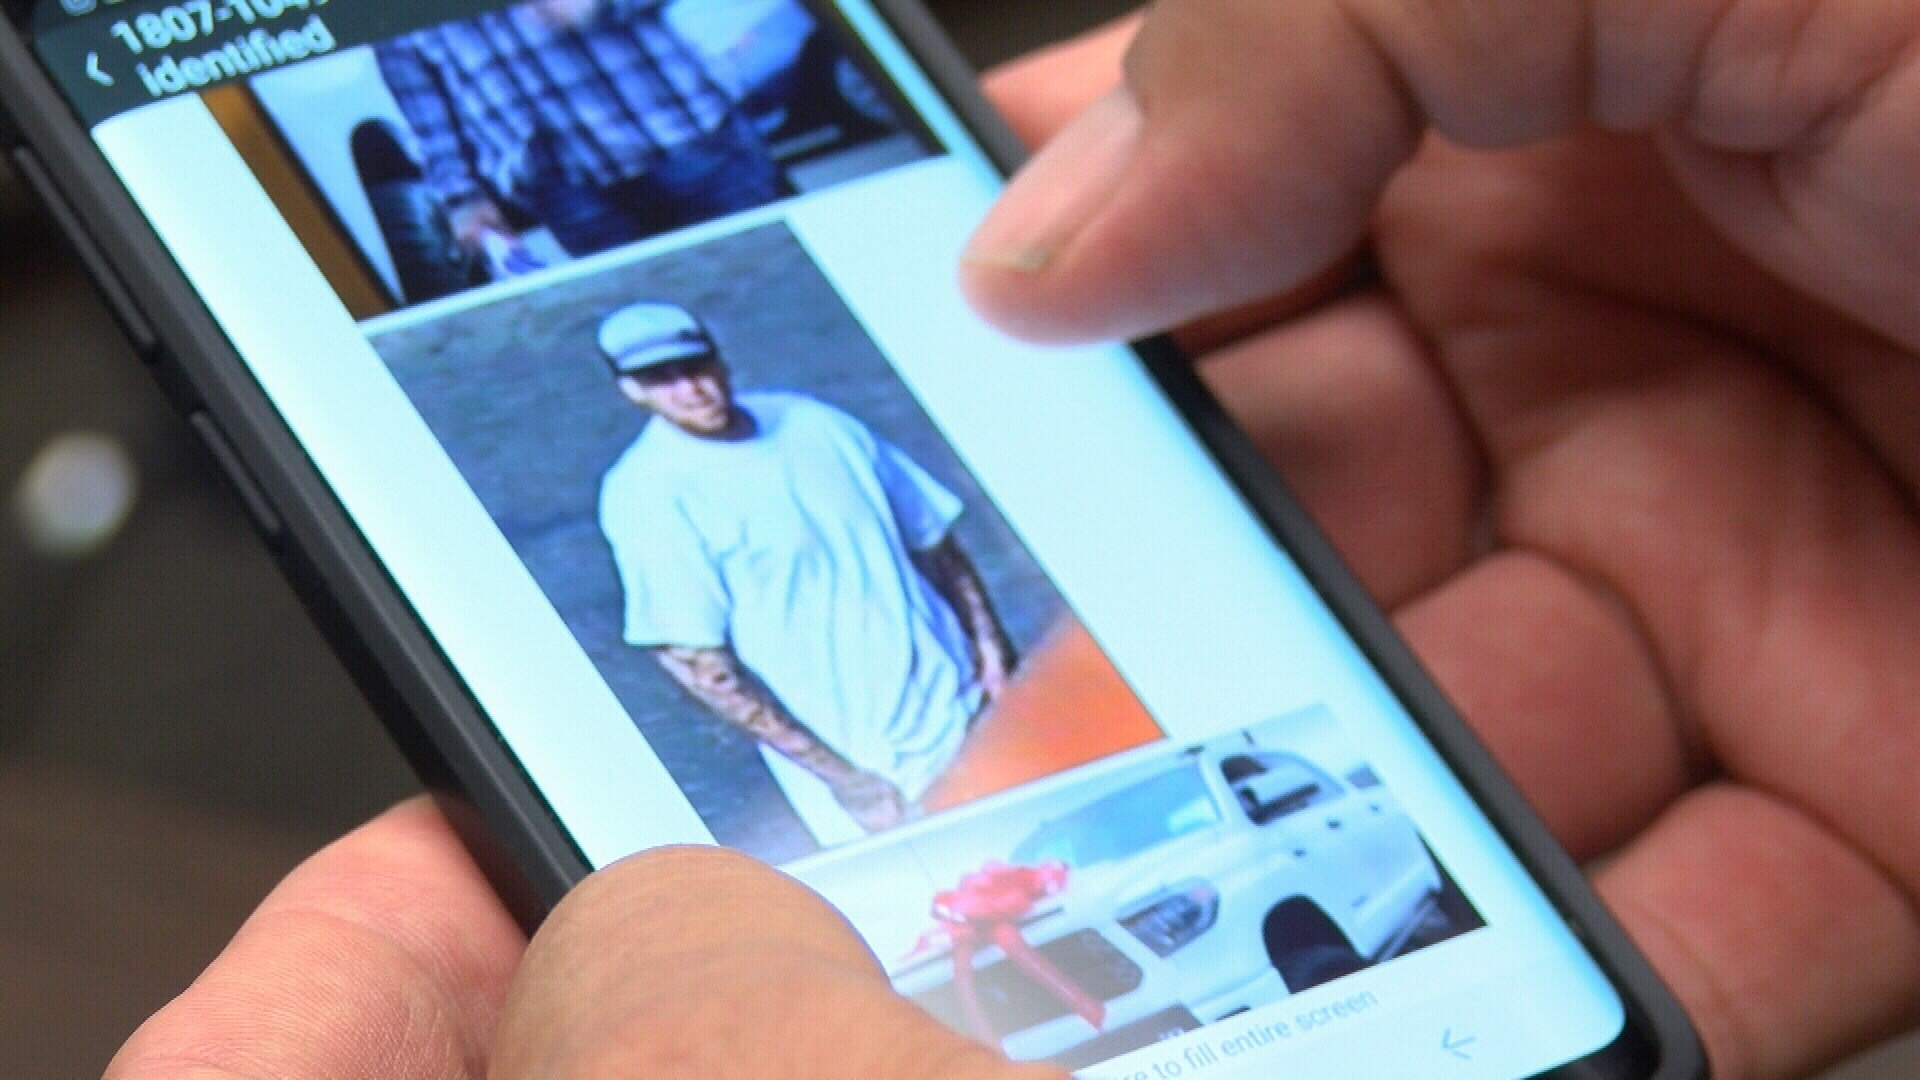 Lompoc police use the app to receive tips and disseminate information (KSBY)